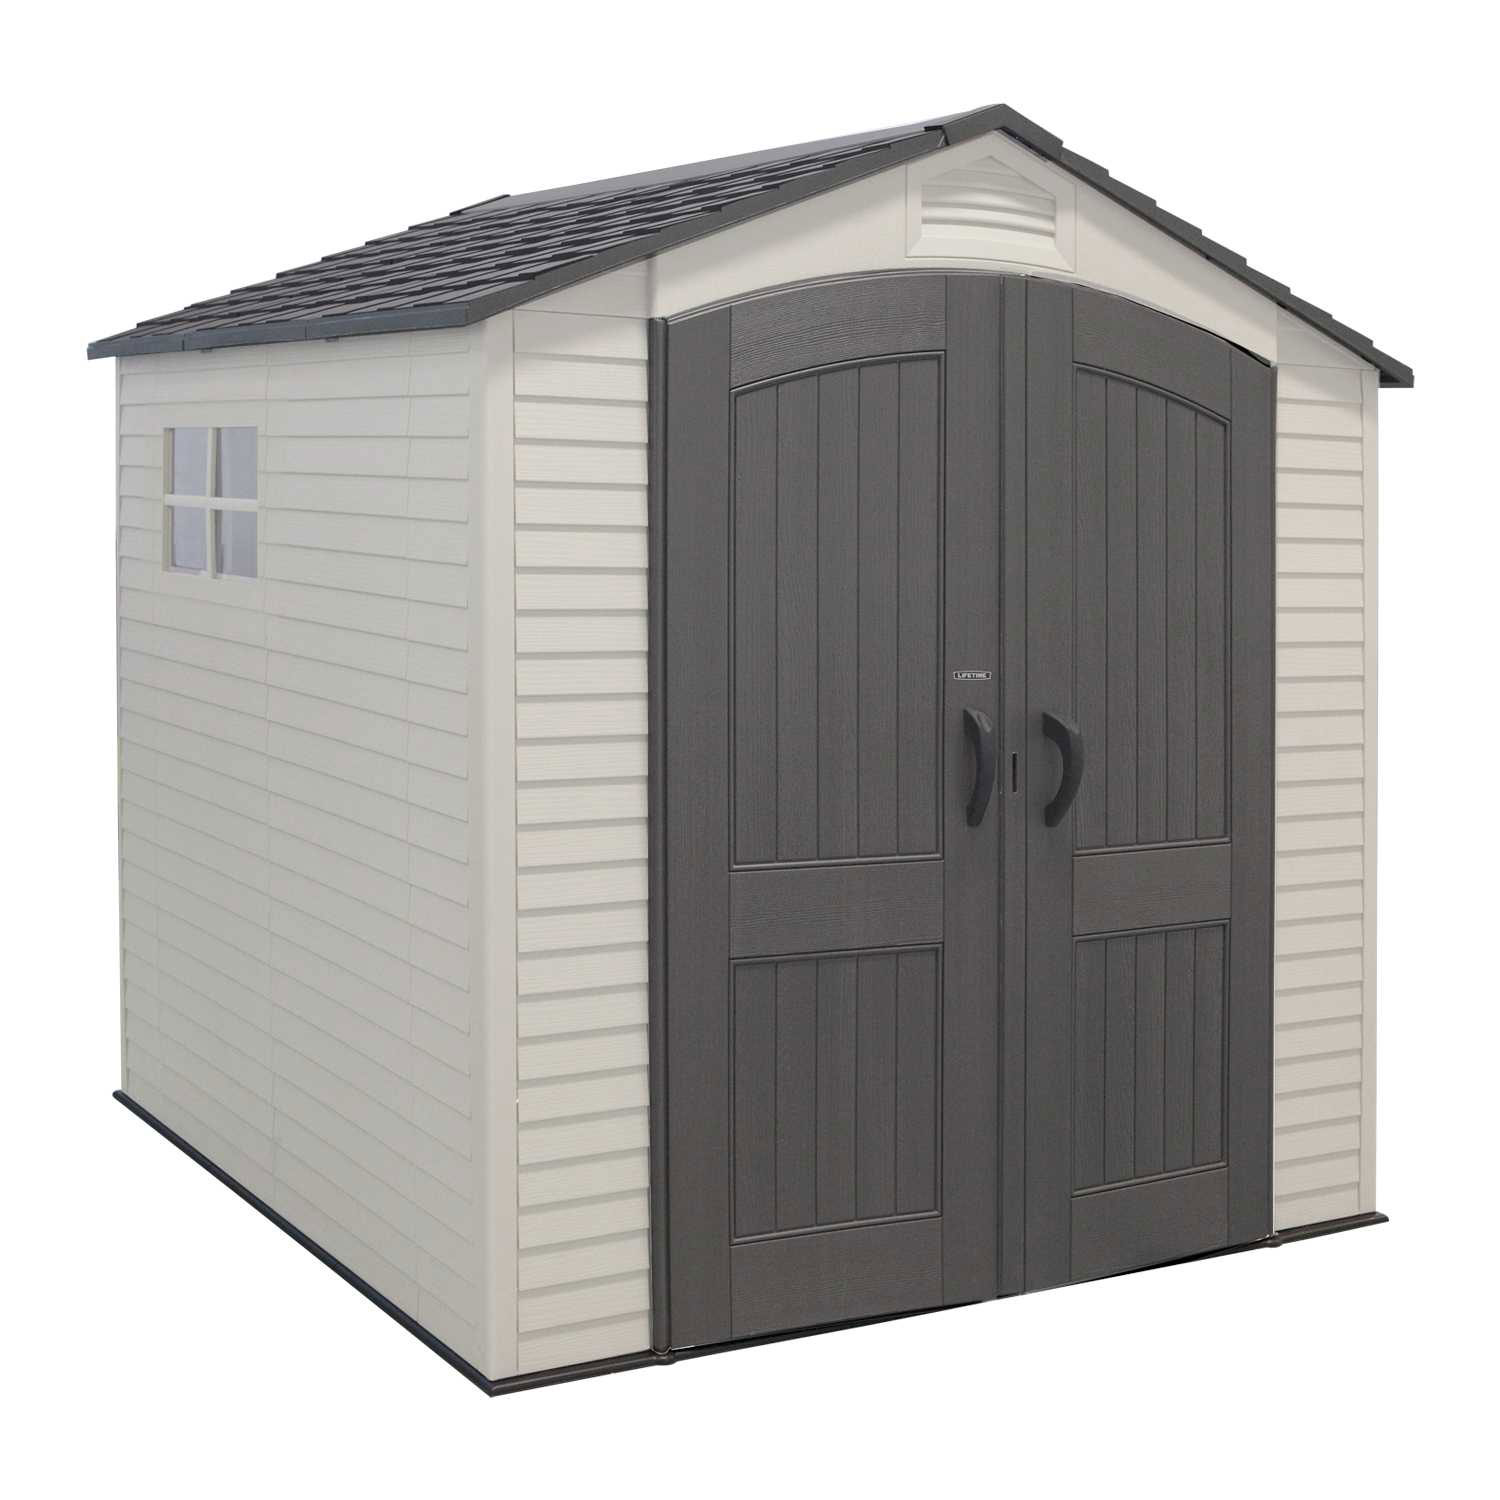 Lifetime 7 x 7 Foot Reinforced Outdoor All Purpose Storage Shed with Windows by Lifetime